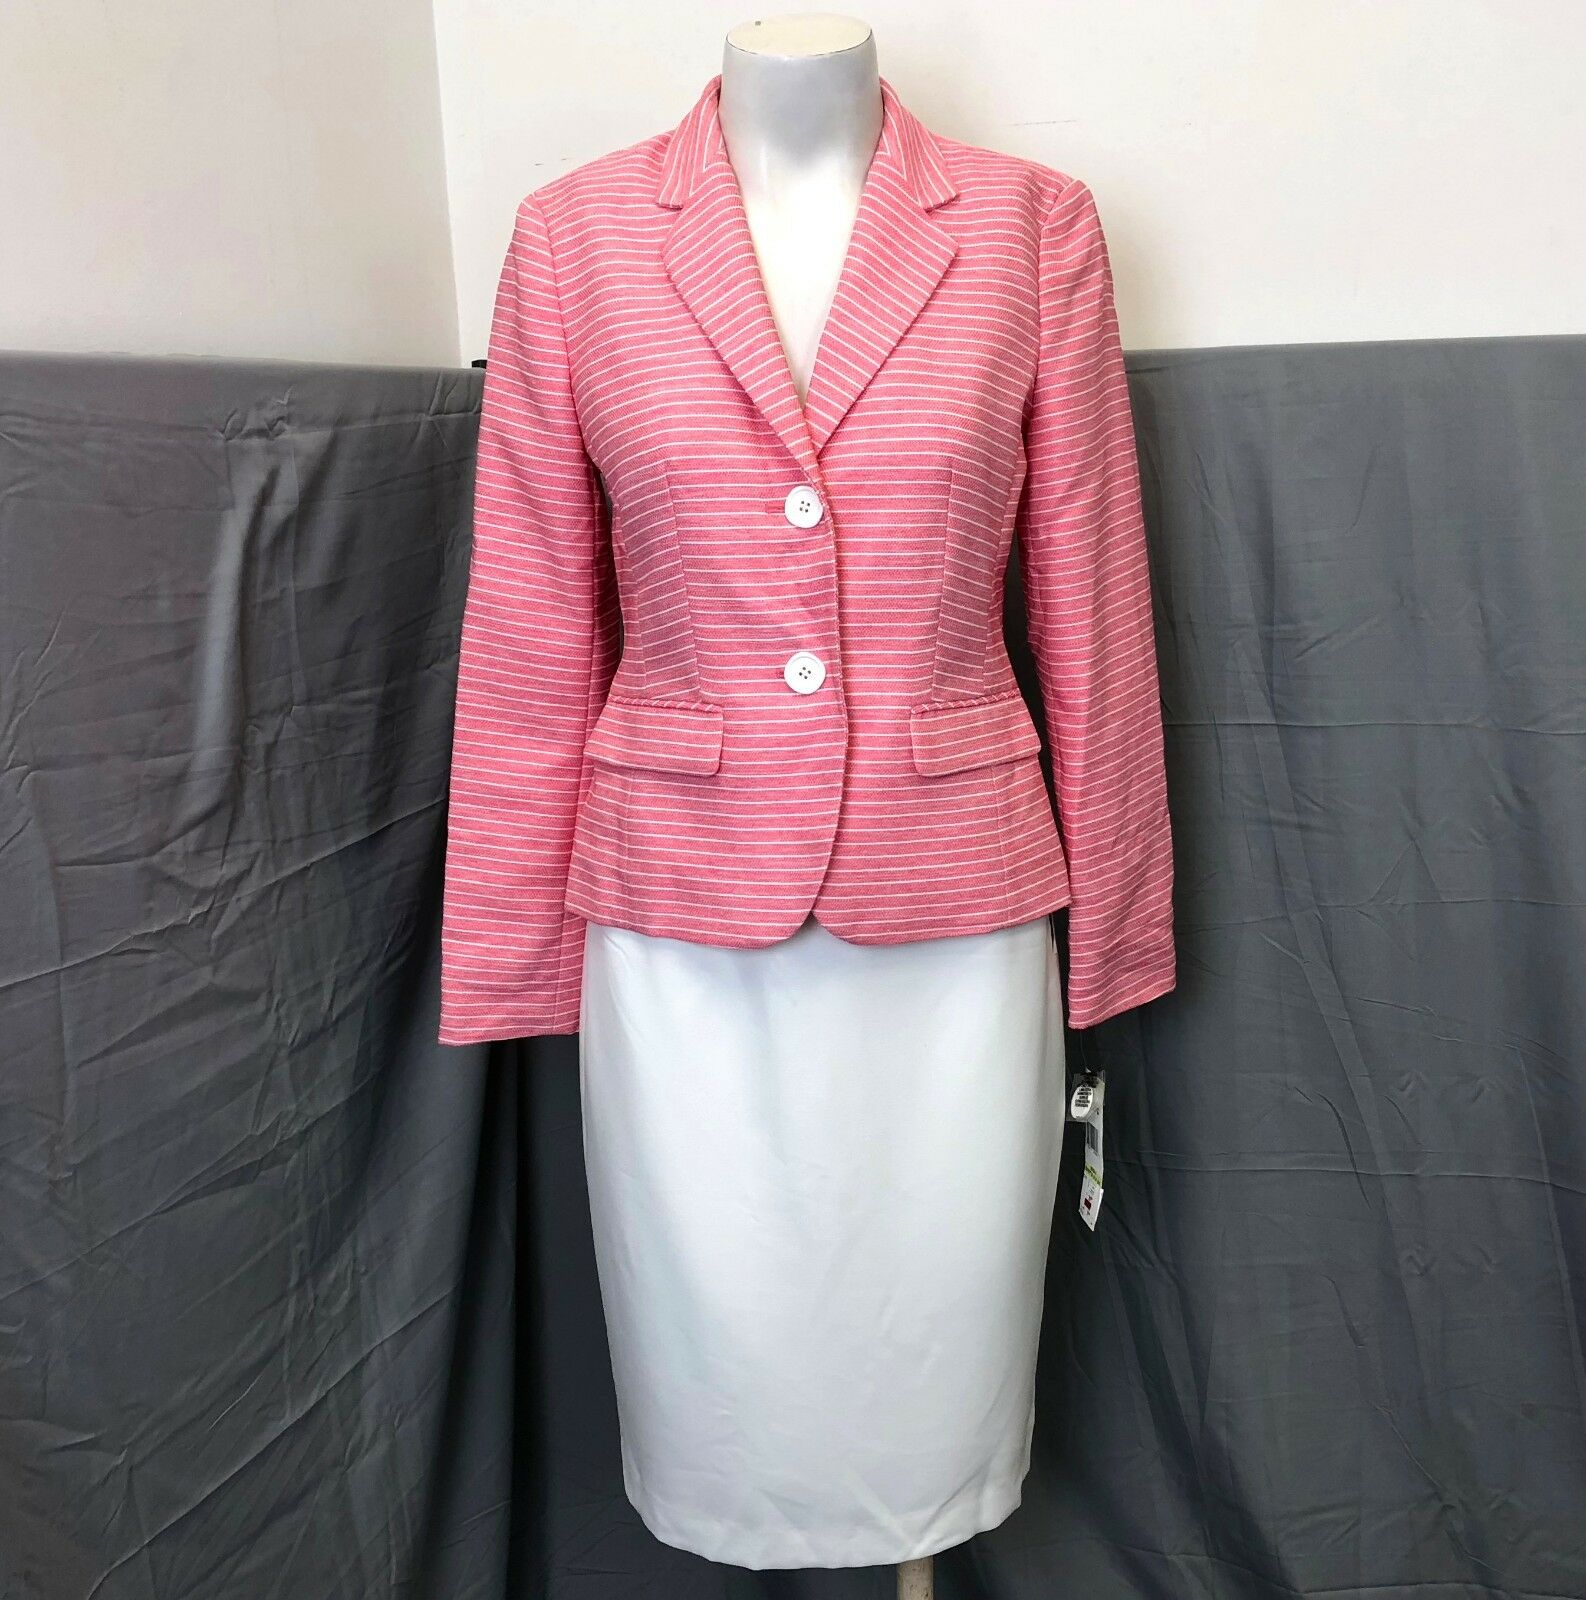 NWT Le Suit Strawberry Vanilla Ice Pink White Stripe 2 Piece Skirt Suit Size 4